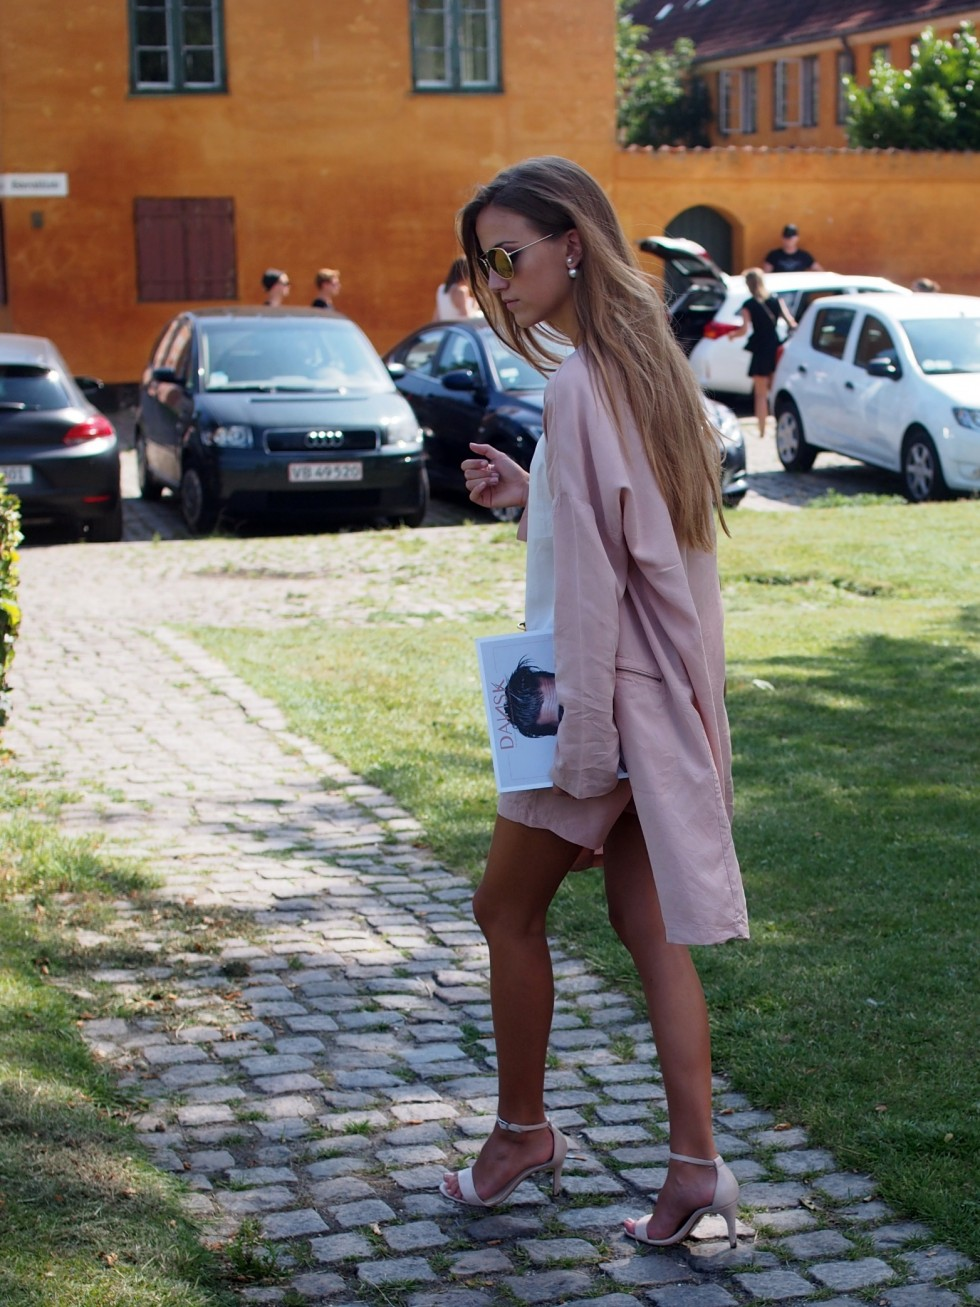 Sandra Willer is wearing pink pastels, a jacket and shorts from MBYM, top from Malene Birger, shoes from Aldo and the bag is from Balenciaga